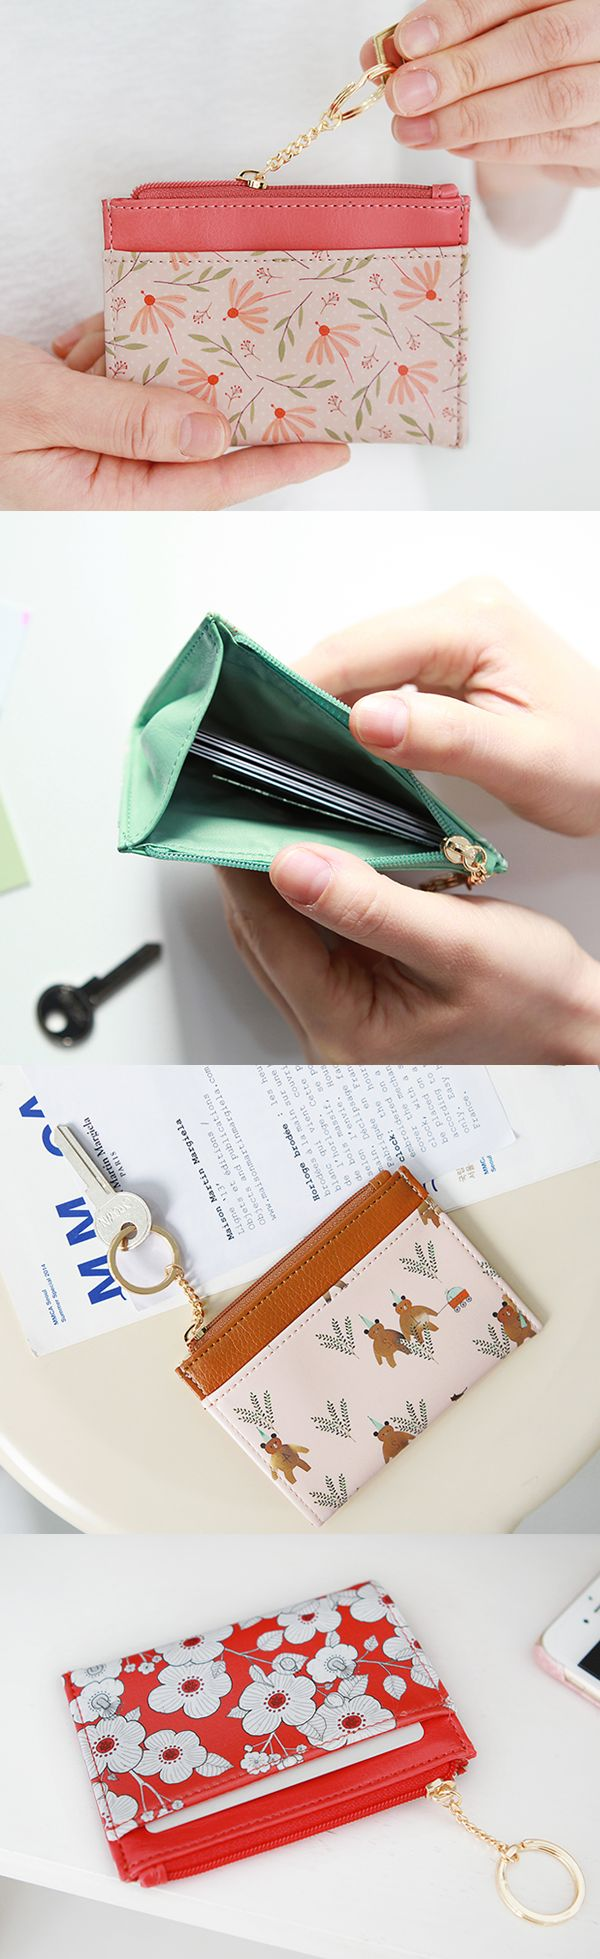 This cute Willow Pattern Key Ring Card Wallet is the easiest way to carry your must-haves when you're on the go! The outer pocket and zippered compartment with key ring are perfect for storing your cards, coins, and cash. It's a simple way to stay organized wherever you are, so check it out!